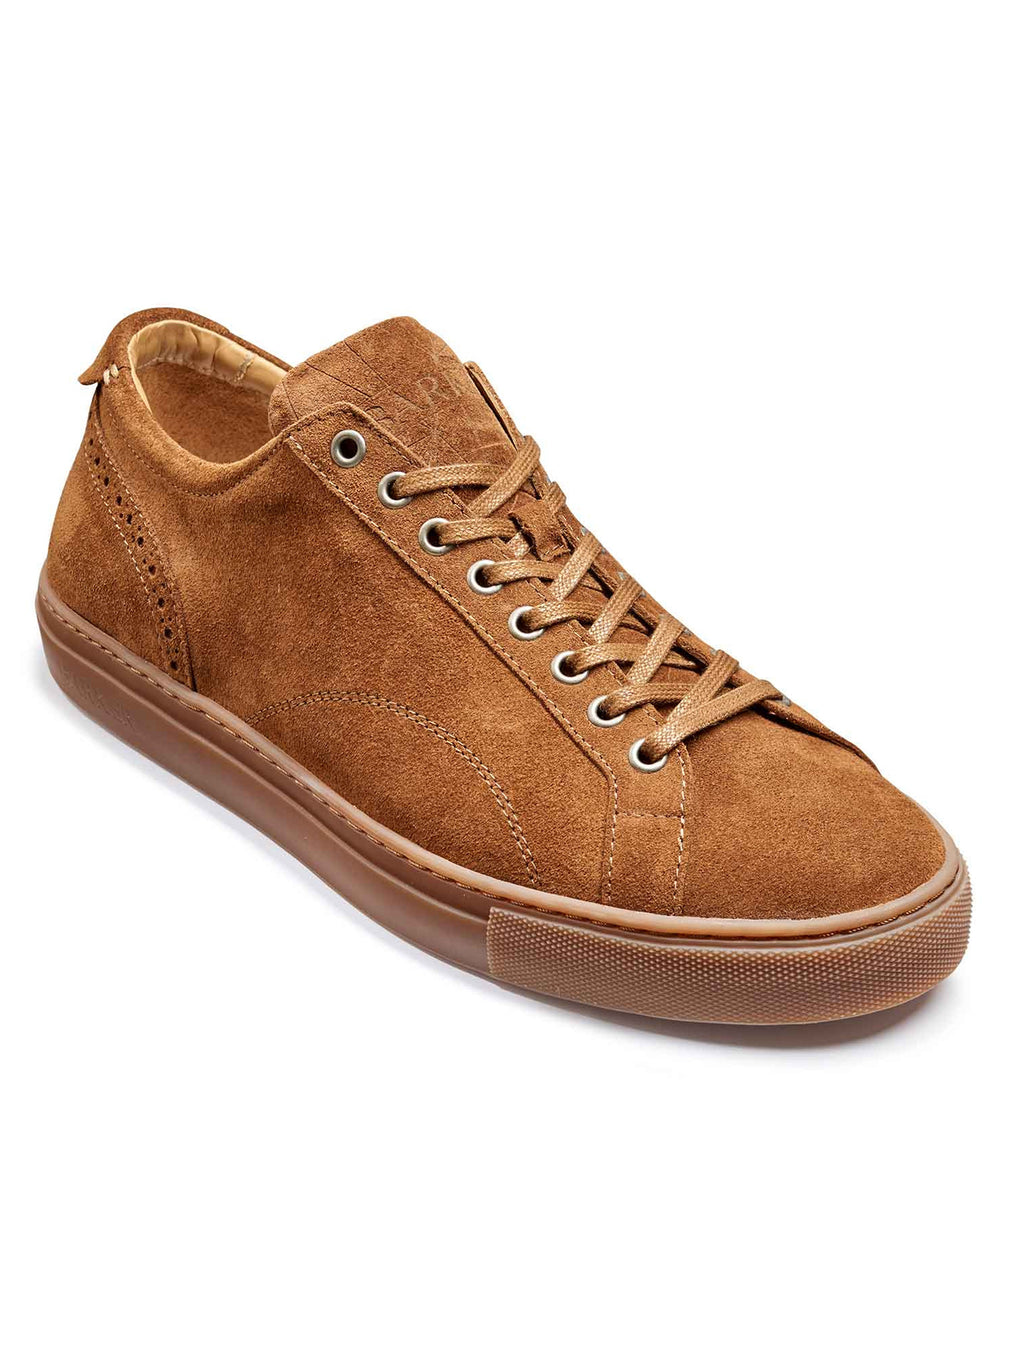 barker axel snuff suede trainer